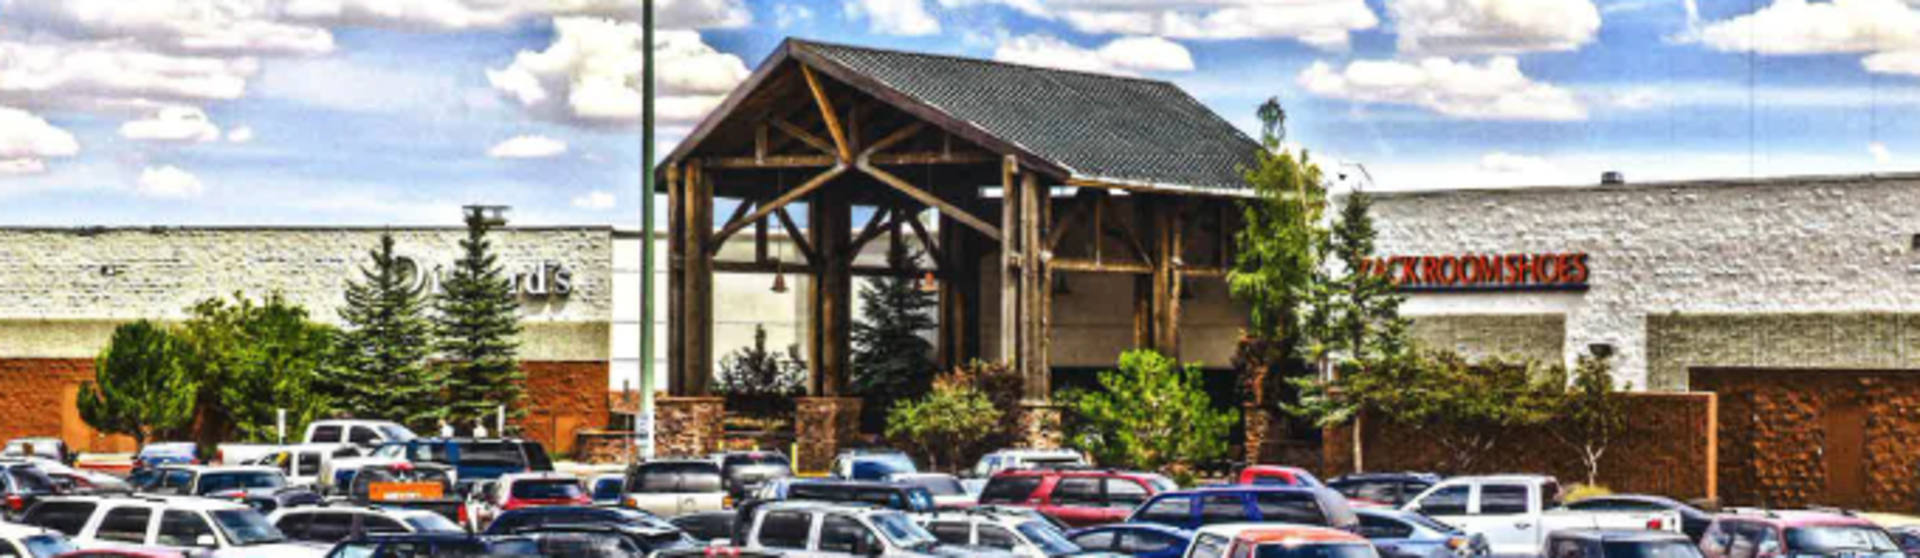 4cd3f7705c Flagstaff AZ  Flagstaff Mall - Retail Space For Lease - Cypress Equities